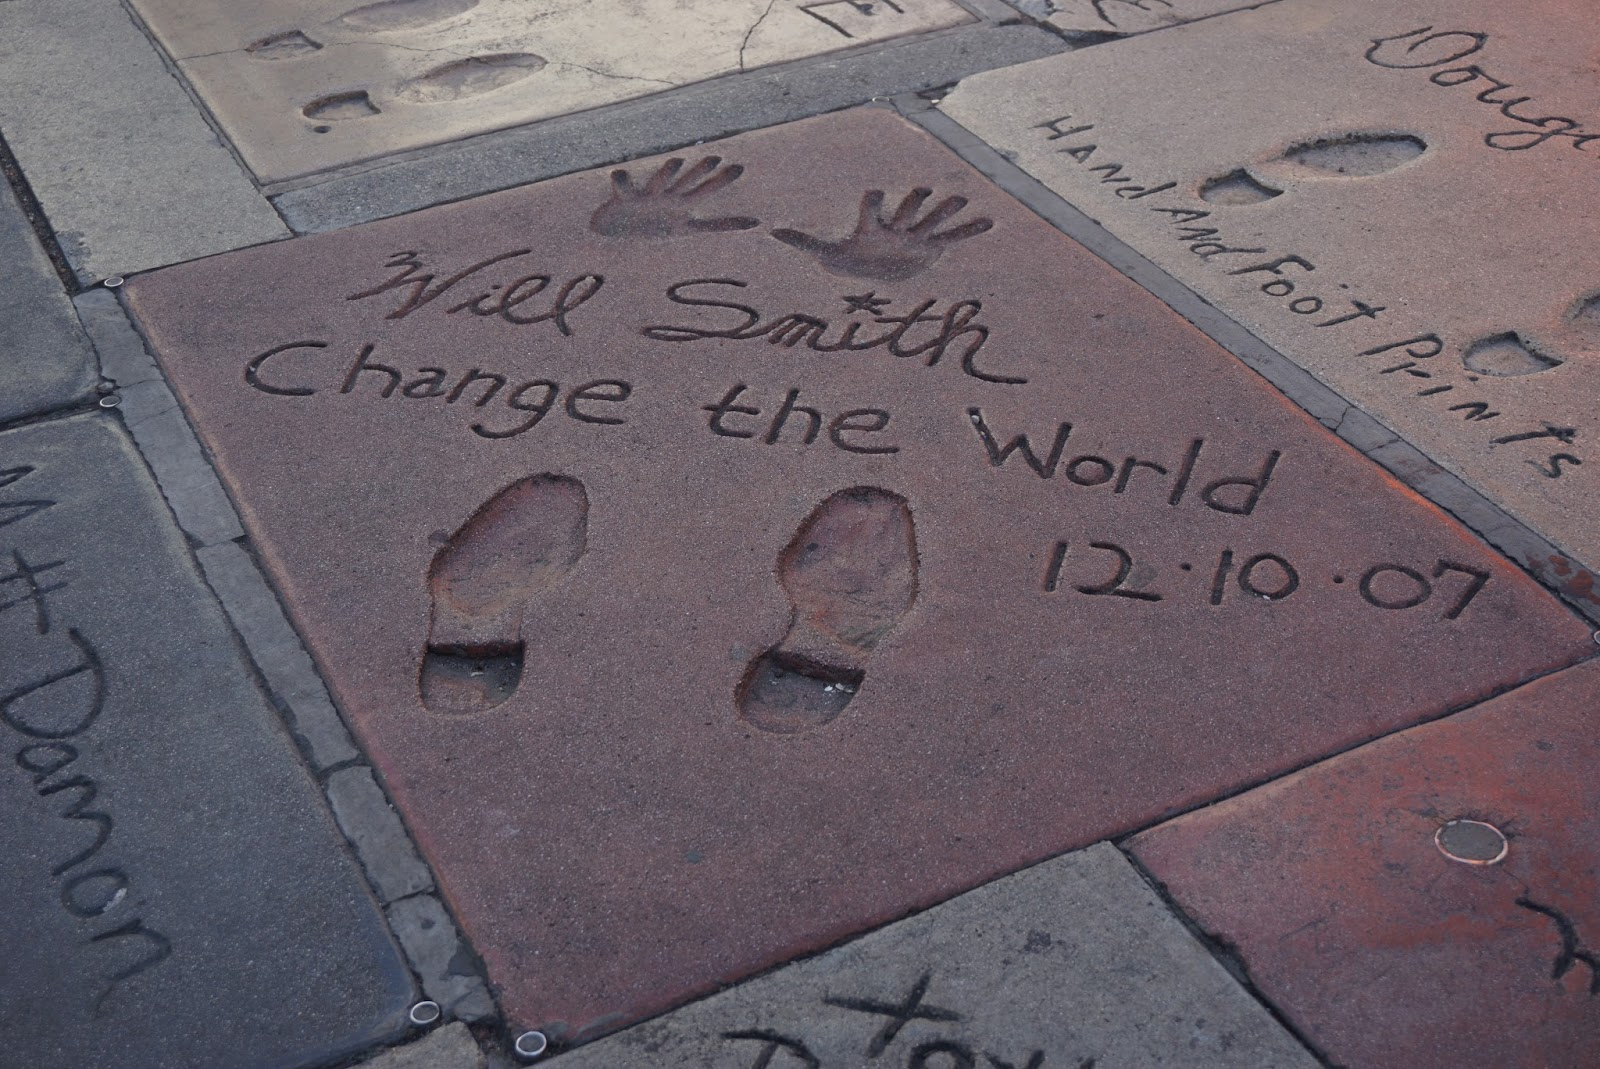 Walk of fame will smith hands & feet